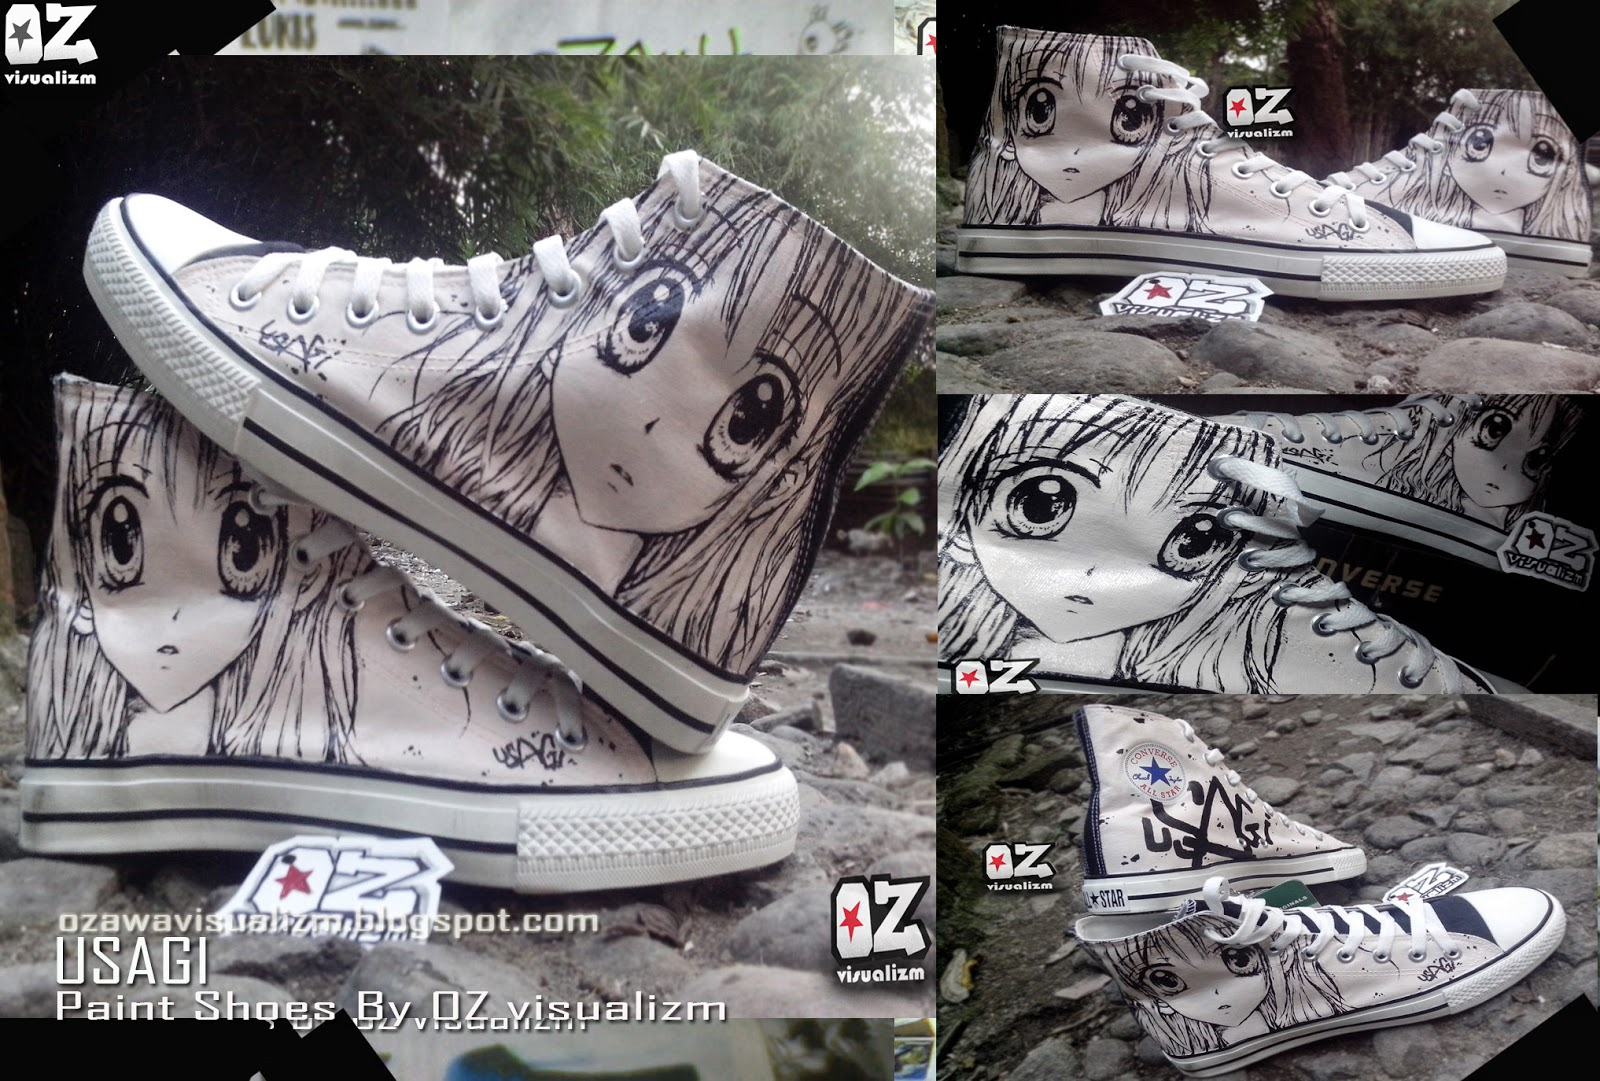 Ozawa Visualizm online shopz  SEPATU LUKIS USAGI CONVERSE ALL STAR bdeb30baa6